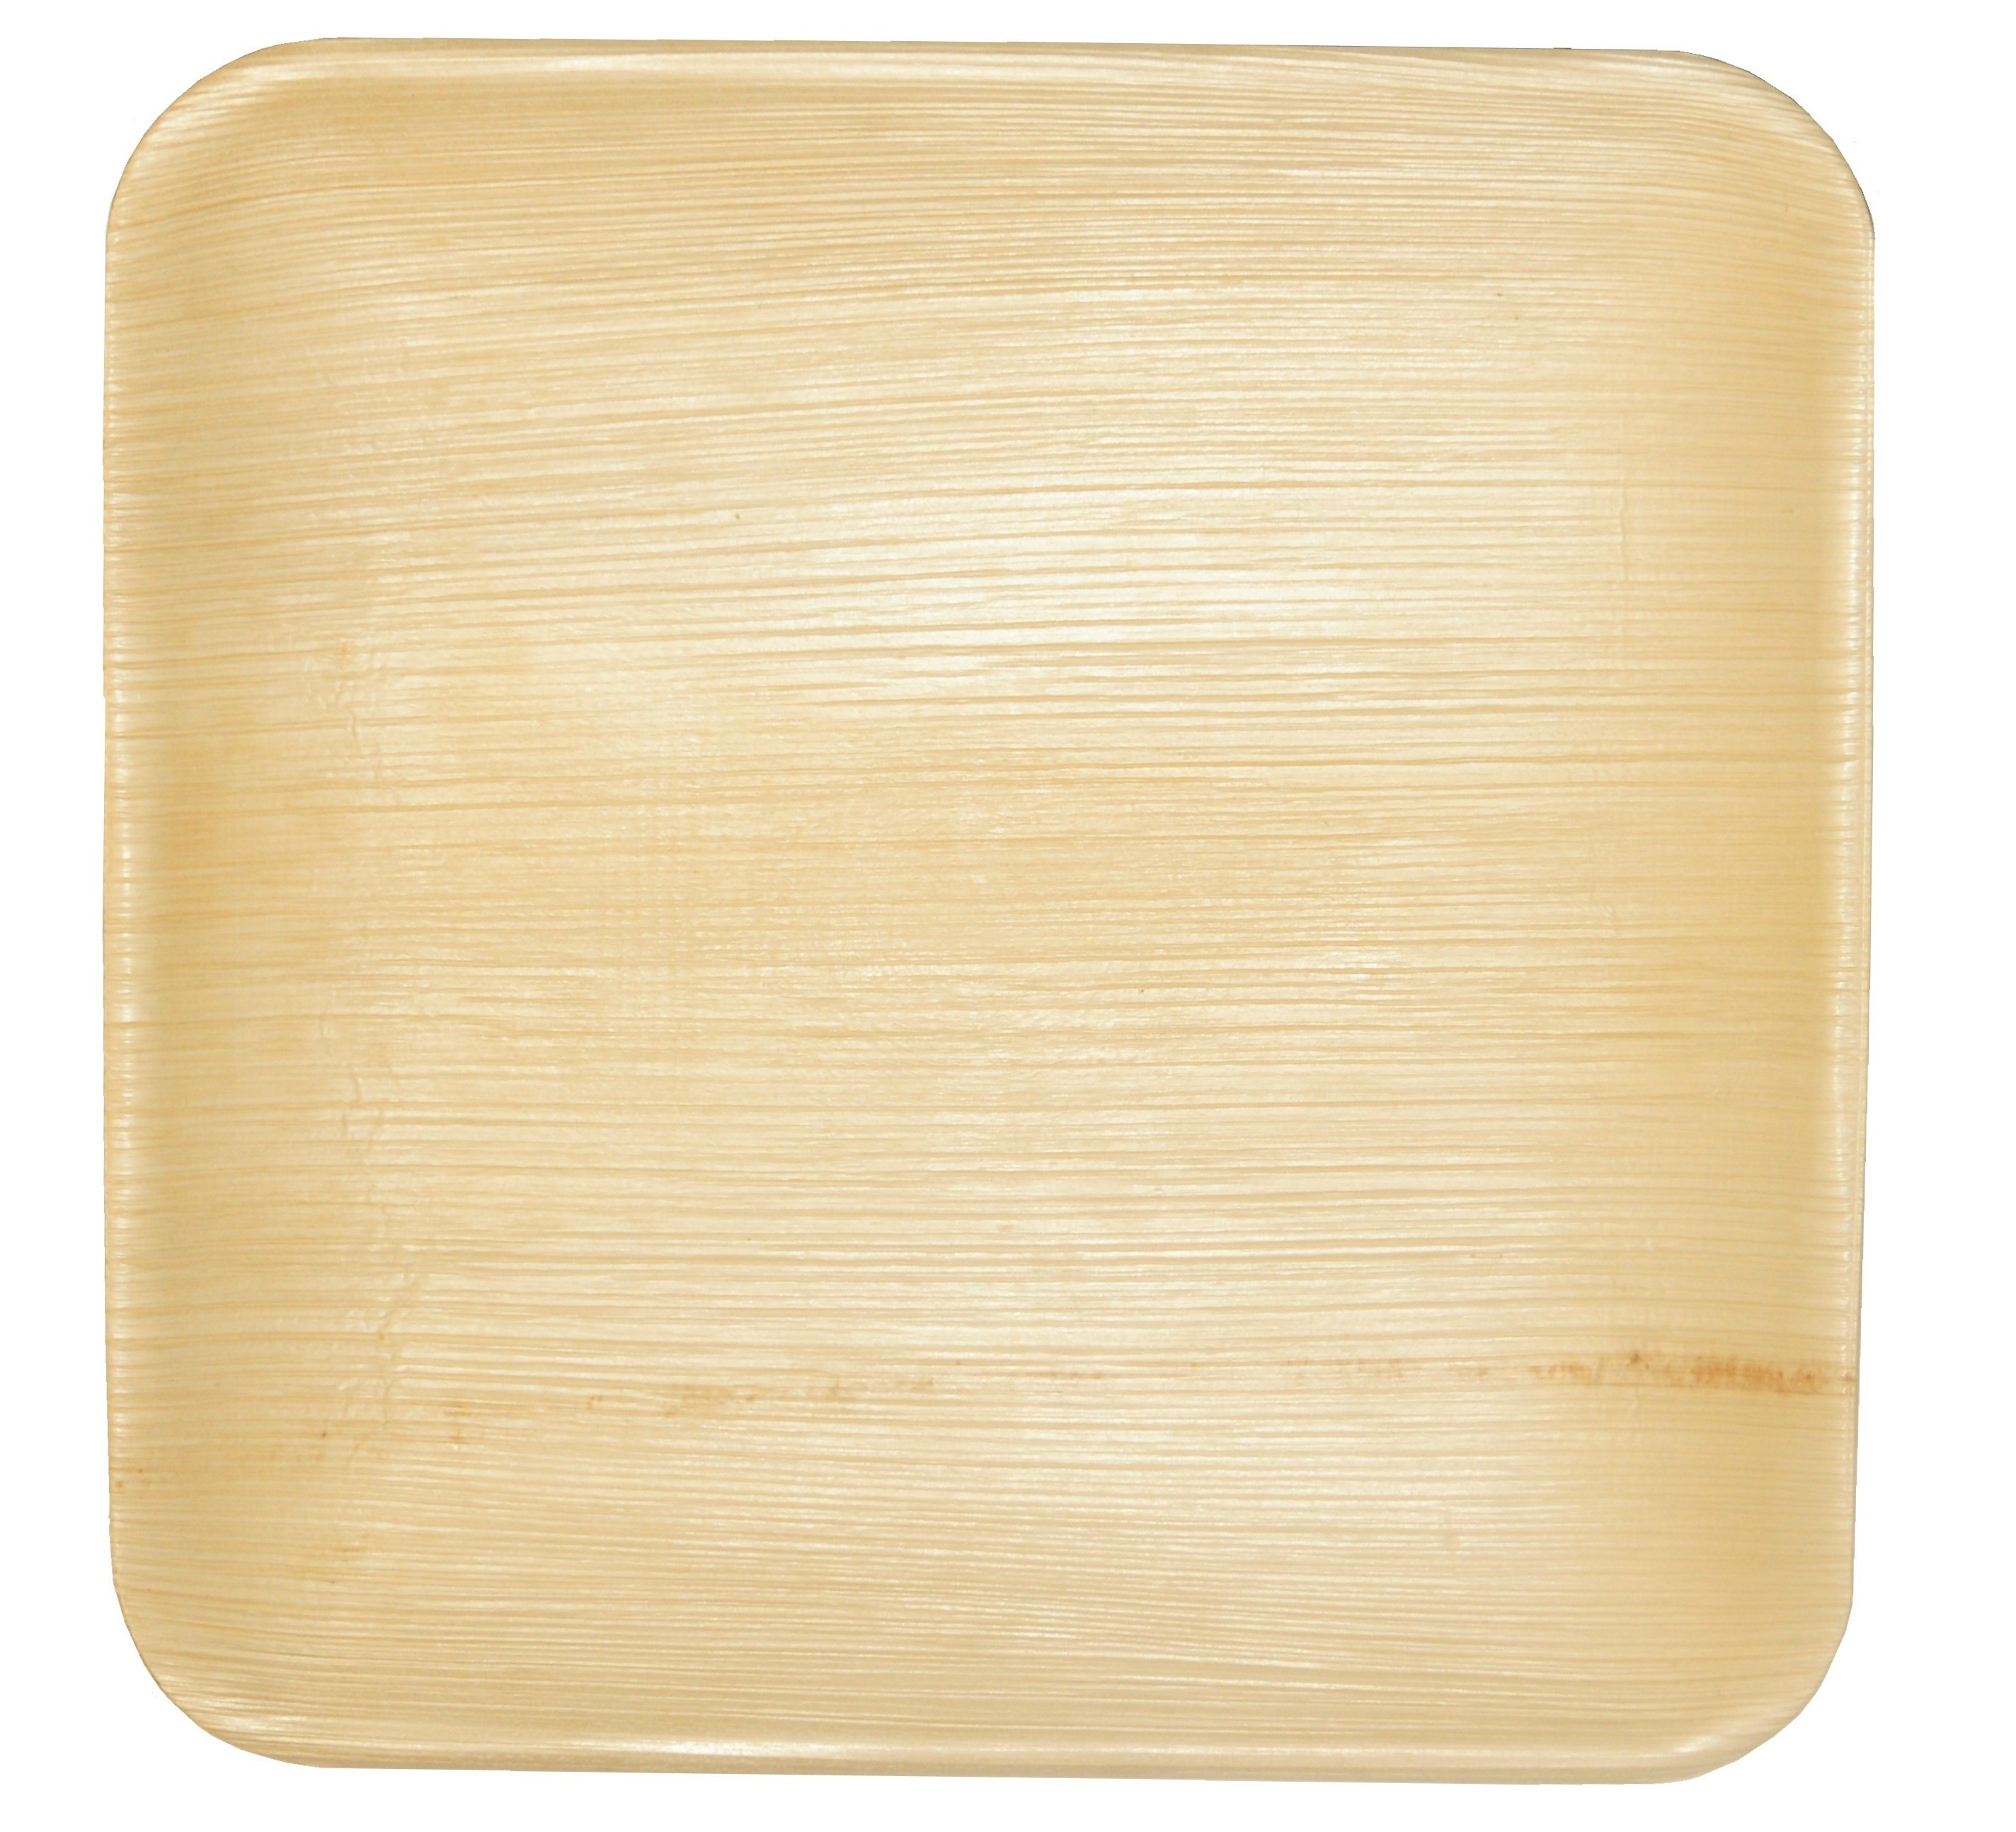 Leaf & Fiber 100% Compostable, Sustainable and All Natural Palm Leaf Dinnerware, 10-Inch Square, 100 Count